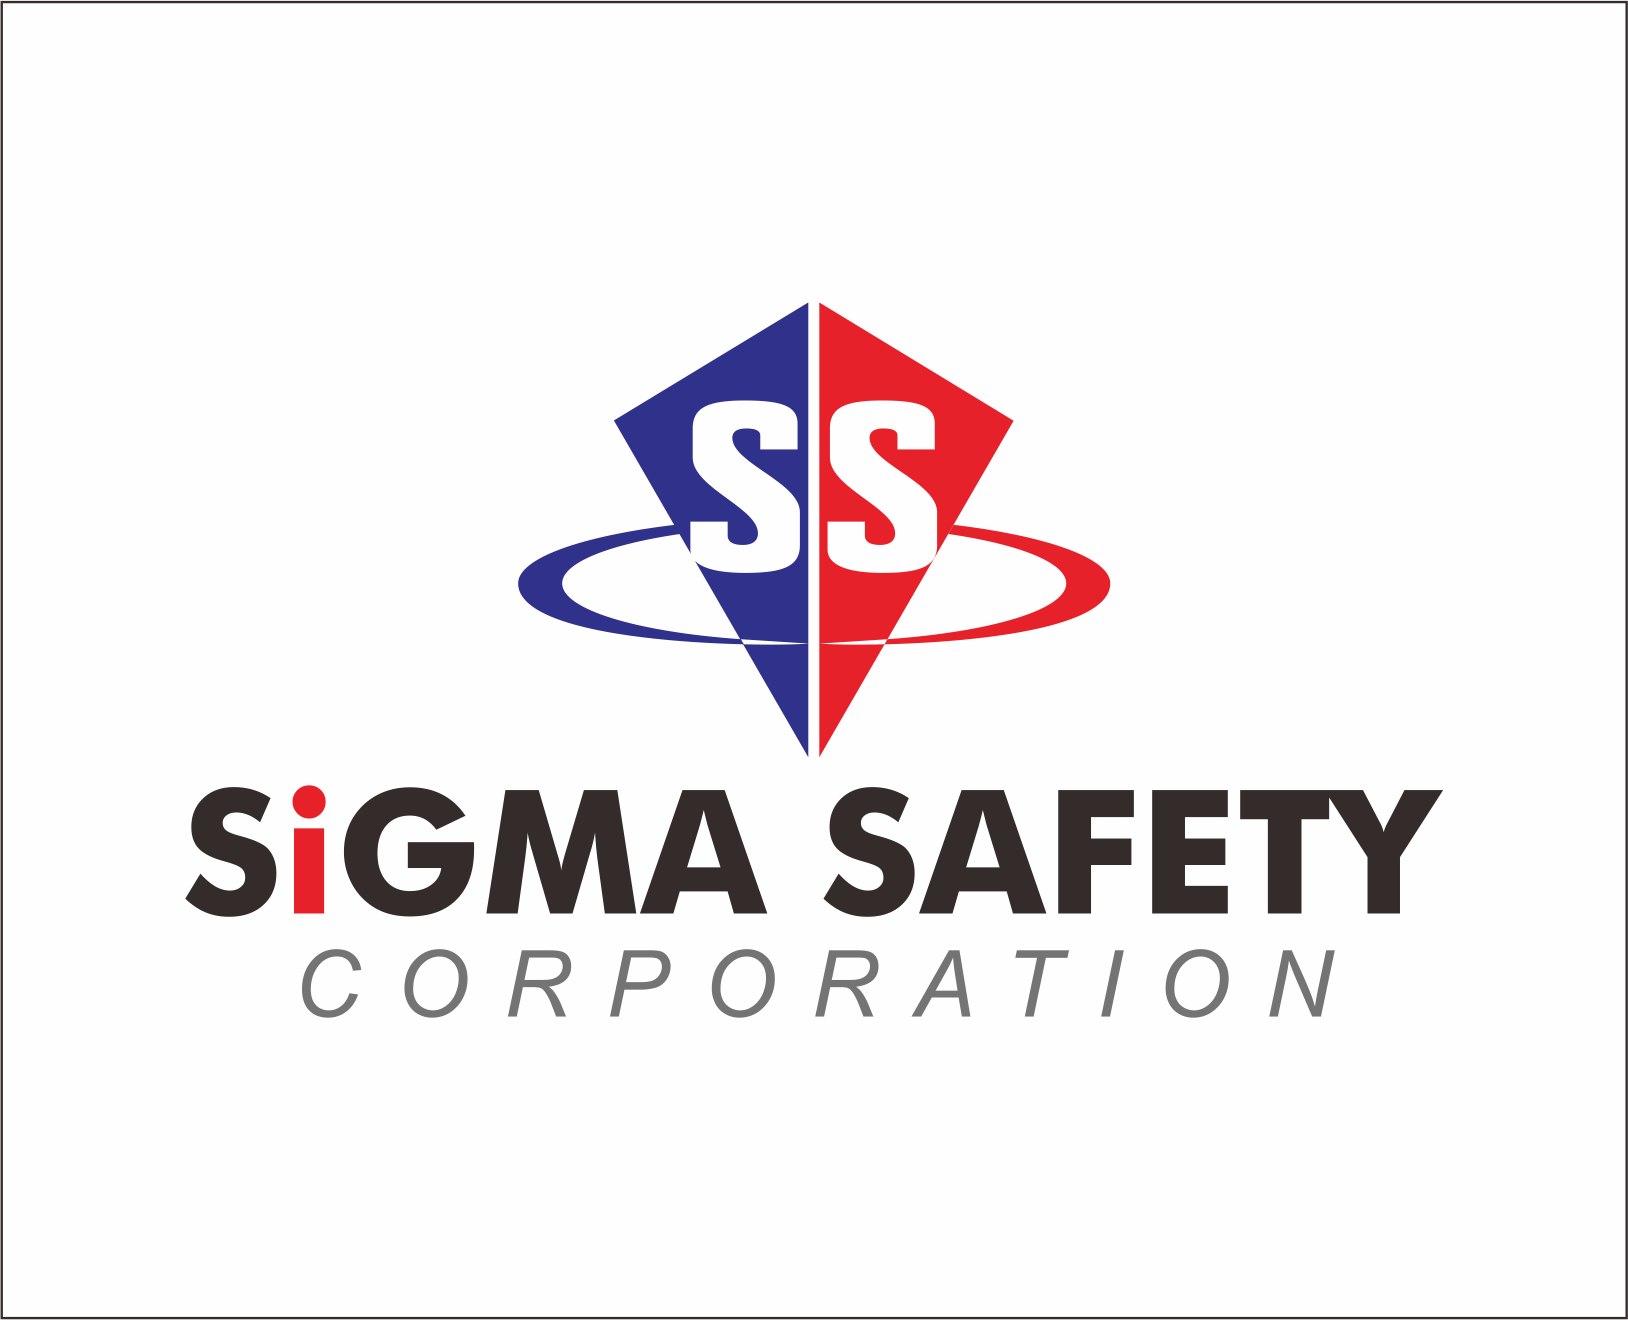 Logo Design by Armada Jamaluddin - Entry No. 241 in the Logo Design Contest Creative Logo Design for Sigma Safety Corporation.